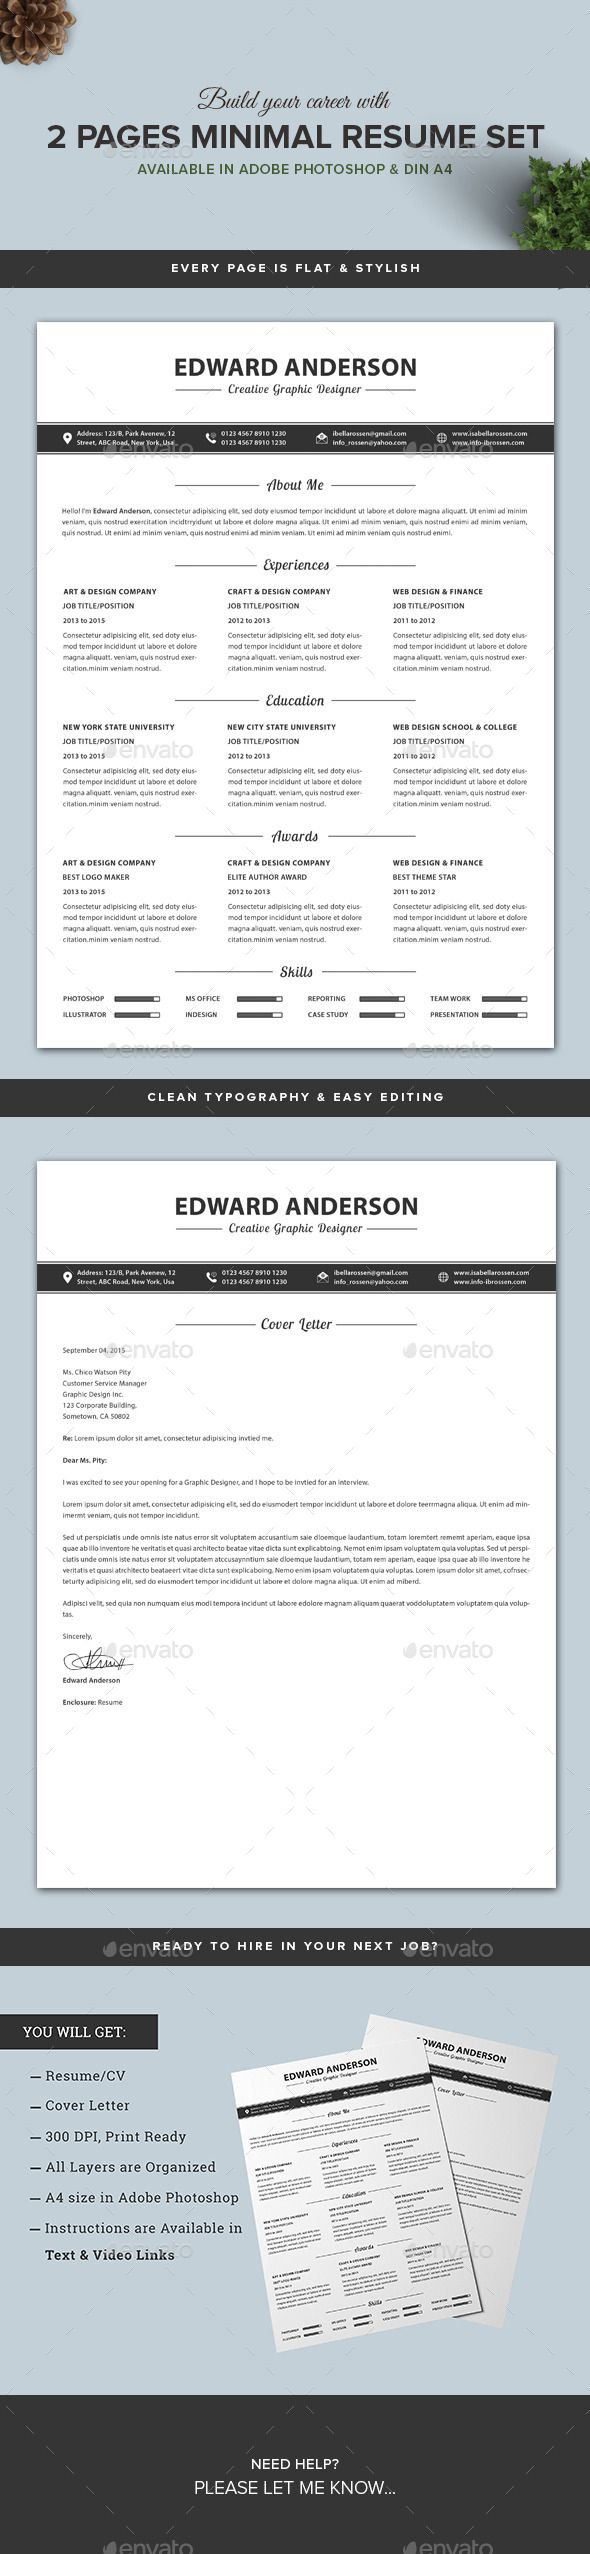 graphic design resume template%0A   Pages  Minimal  Resume CV Set  Resumes Stationery Download here  https